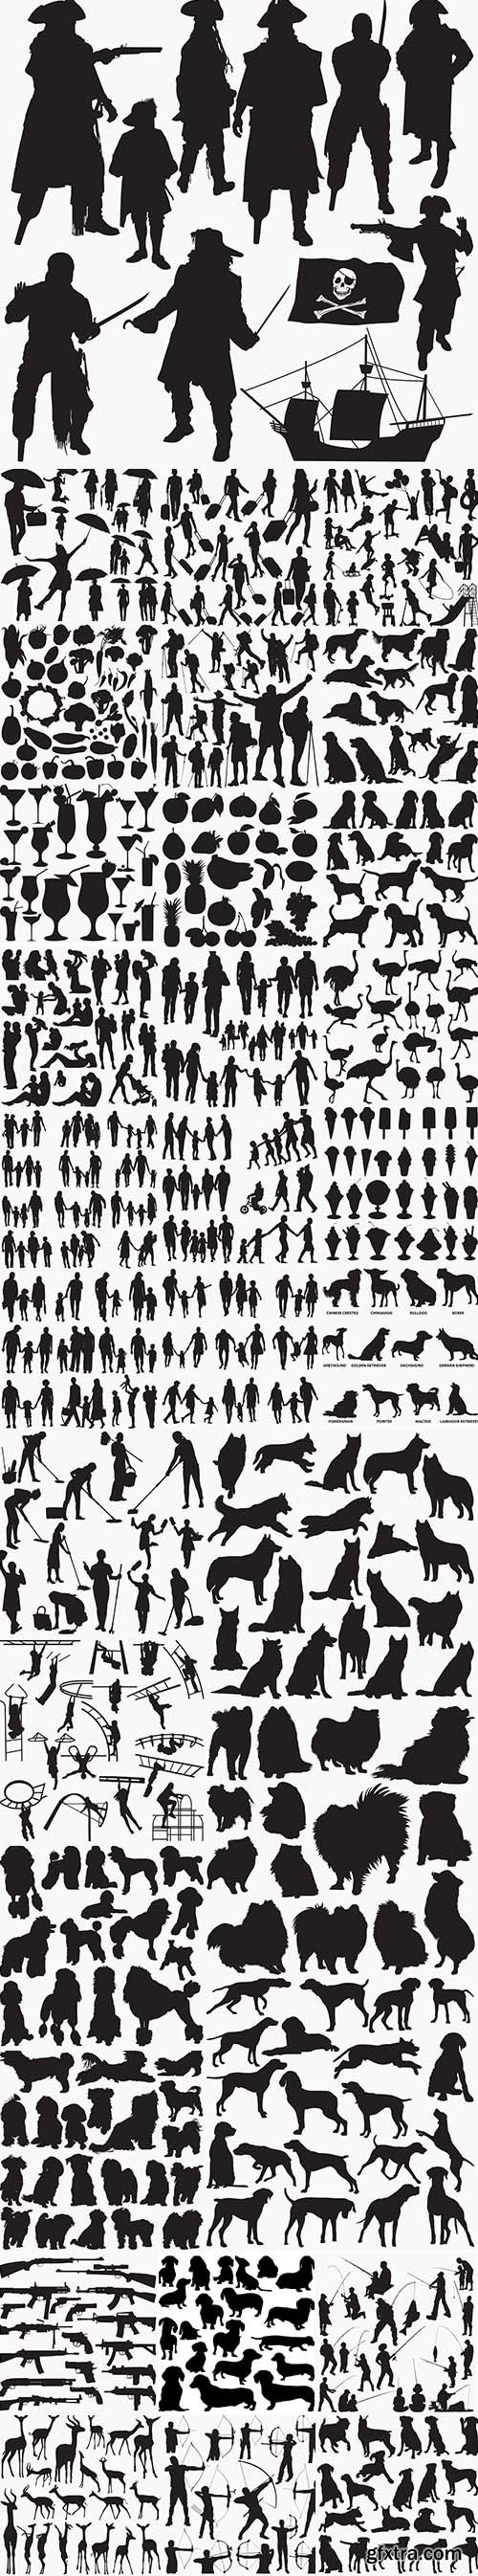 32 Set in 1 Bundle - Vector Black Silhouettes